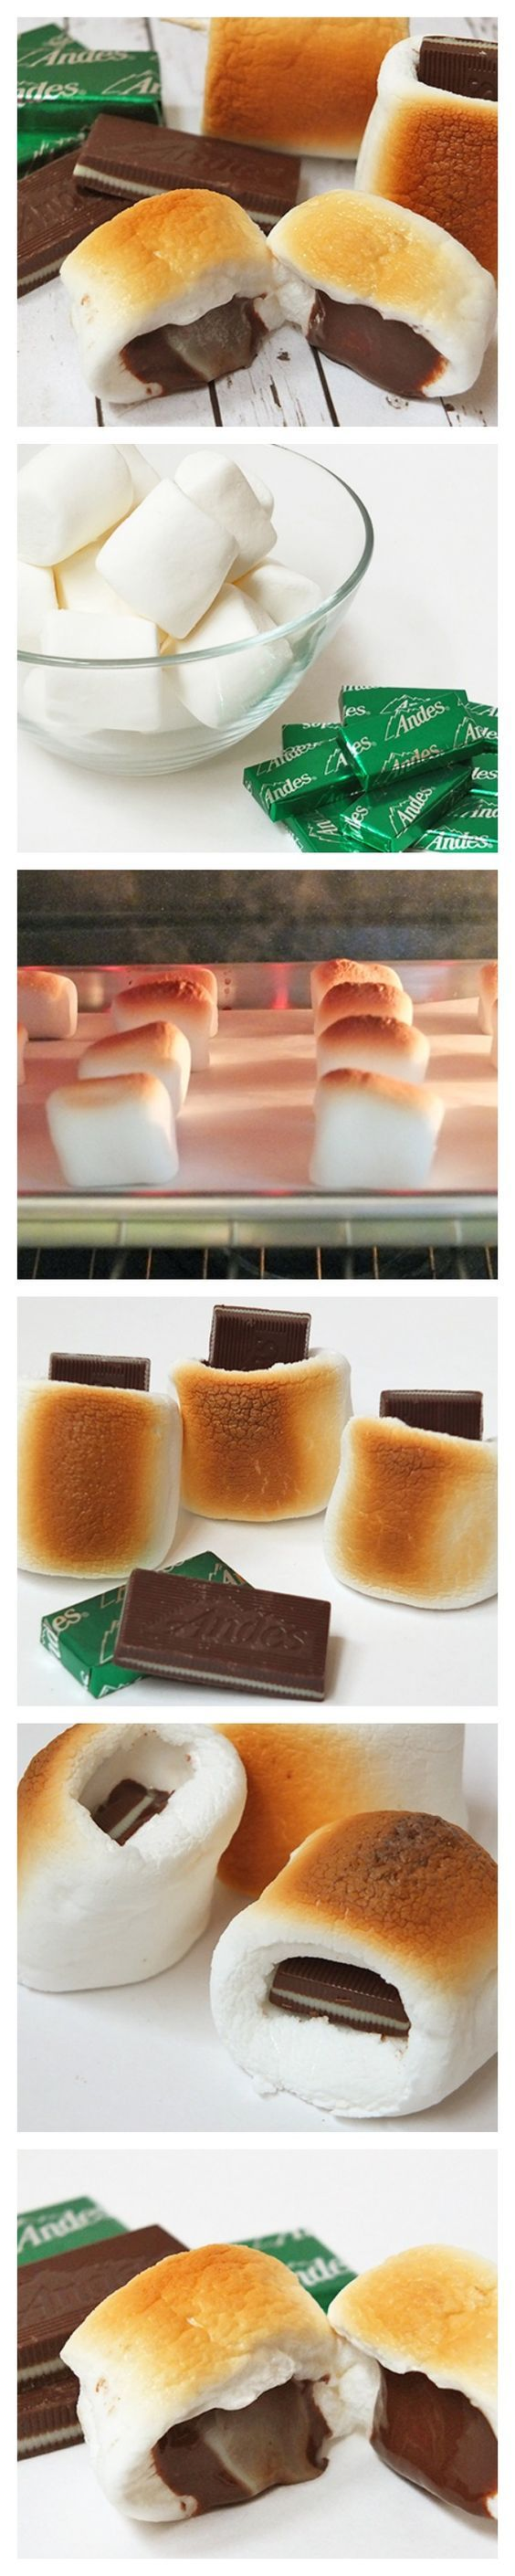 Toasted marshmallows with a minty, melty chocolate center! OMG this is like 5 pounds waiting to happen.